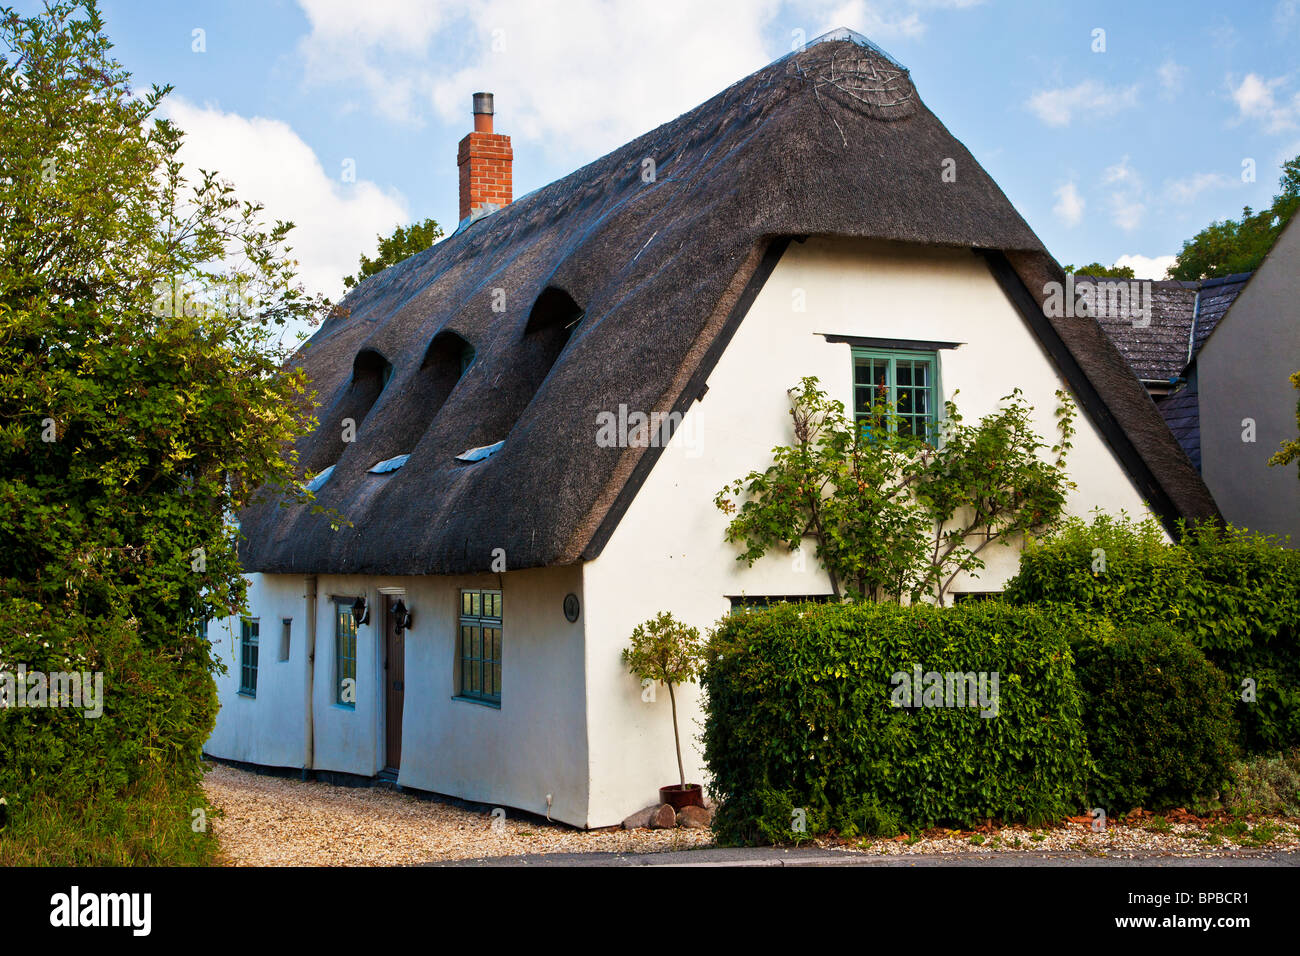 Thatched cottage in the Wiltshire village of Upper Wanborough - Stock Image